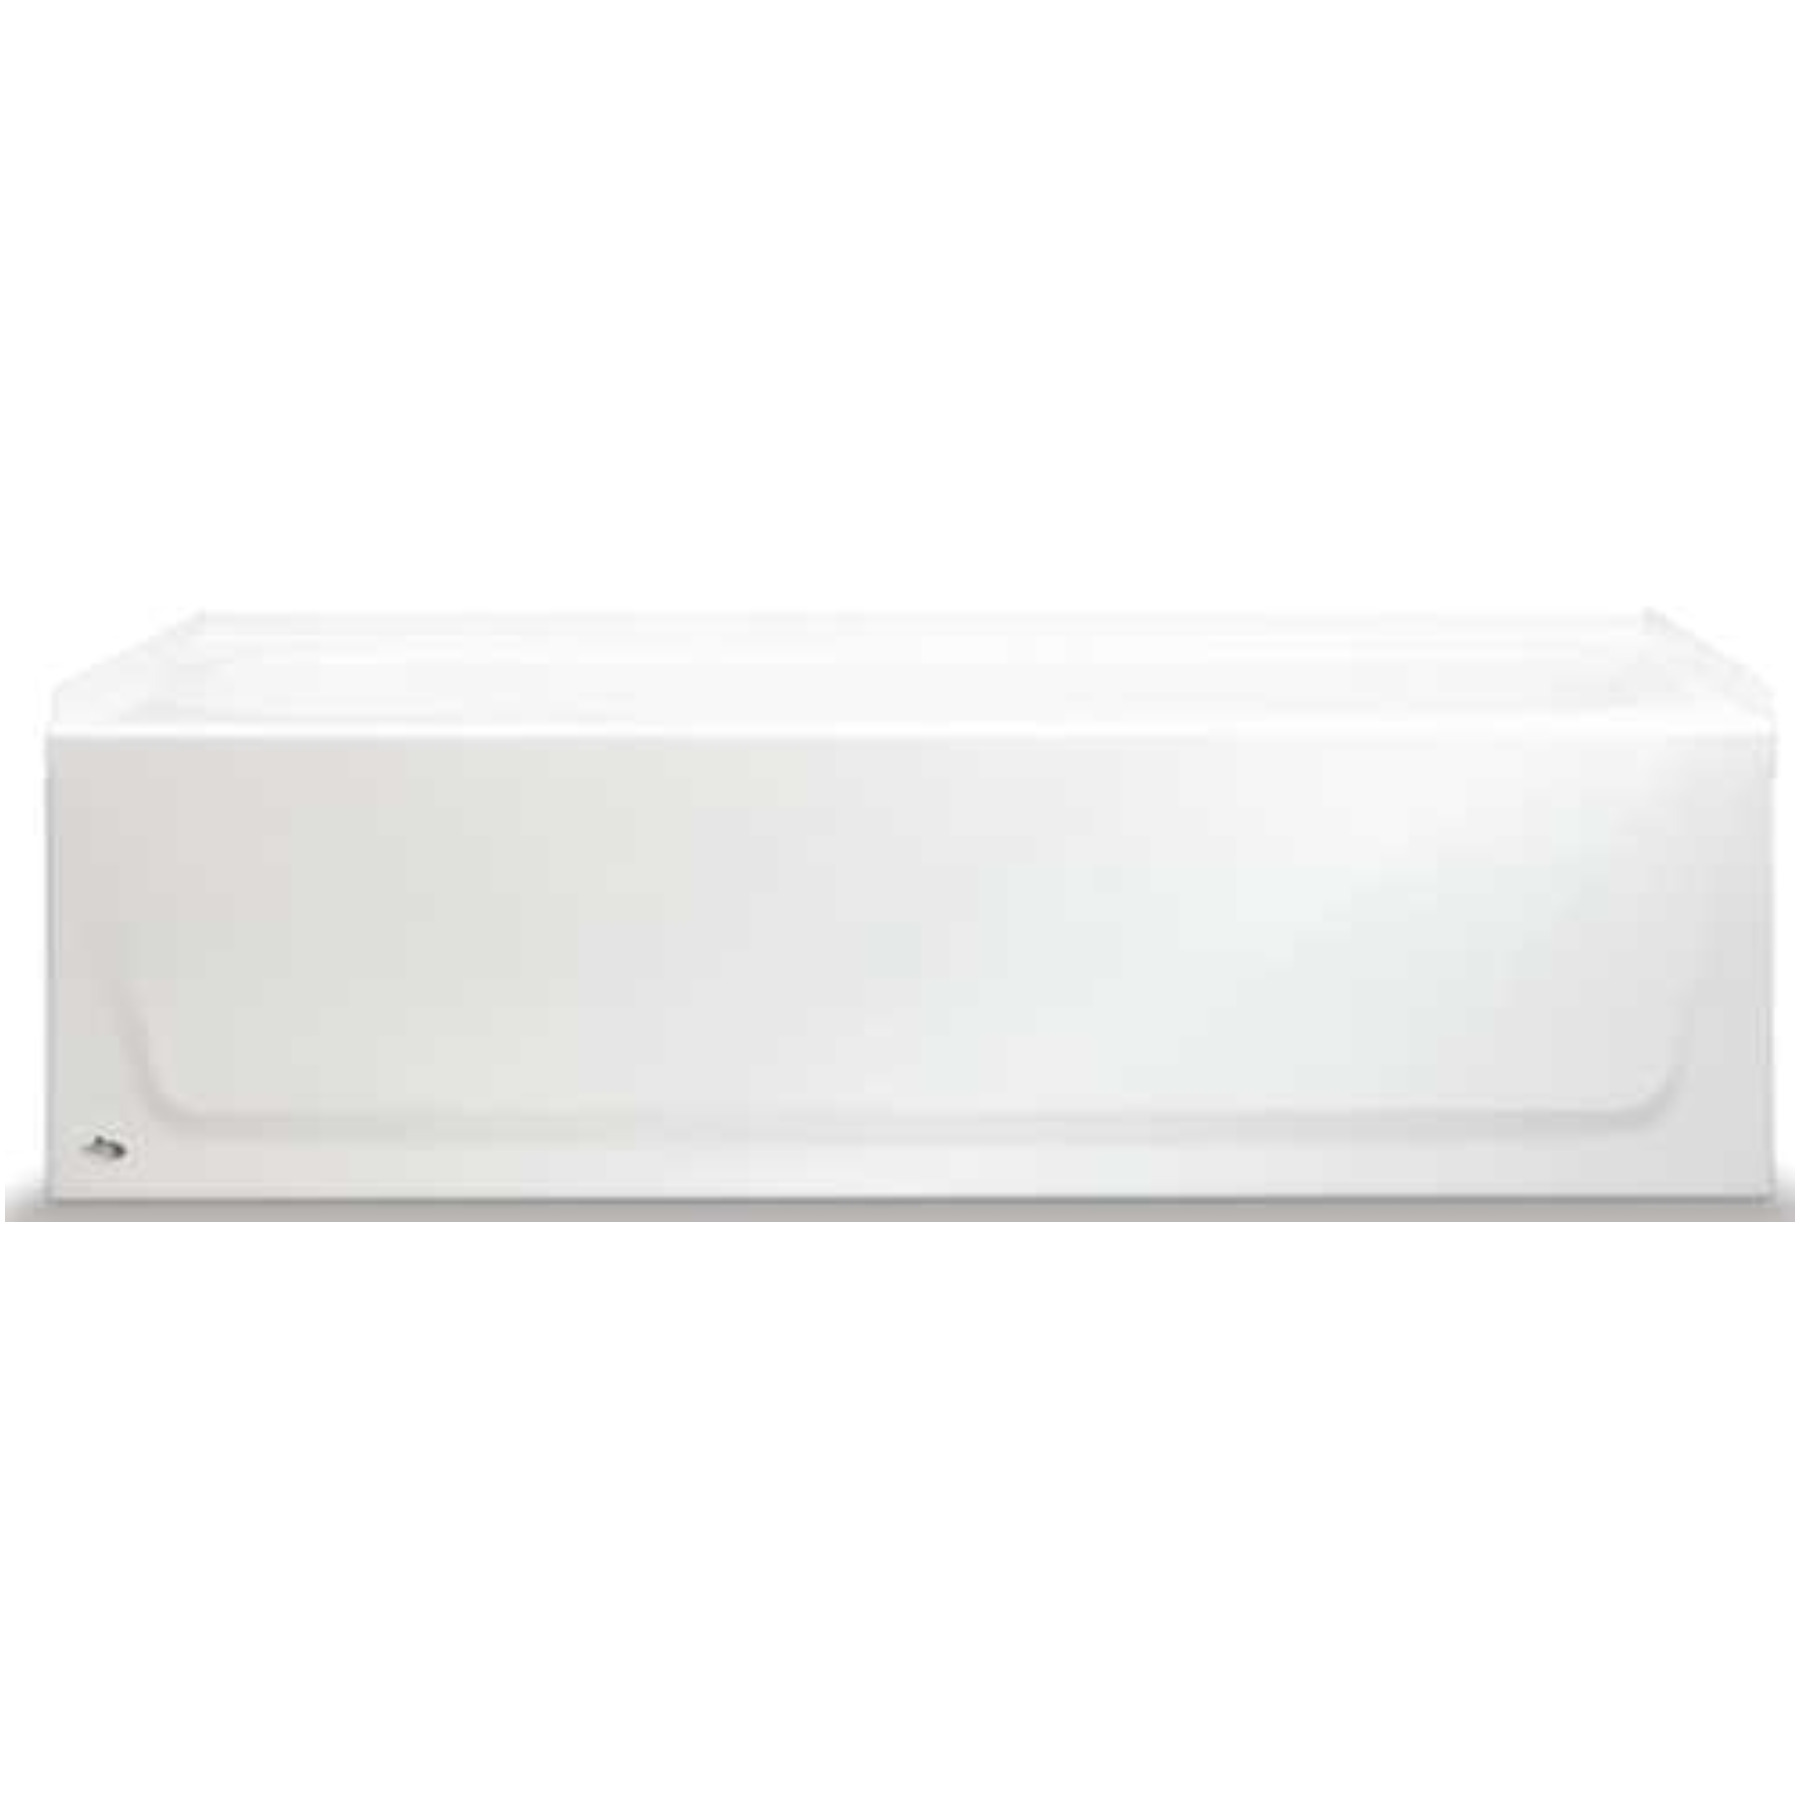 BOOTZ INDUSTRIES� STEEL BATHTUB WITH LEFT-HAND DRAIN AND ABOVE-FLOOR ROUGH, 60 IN., WHITE